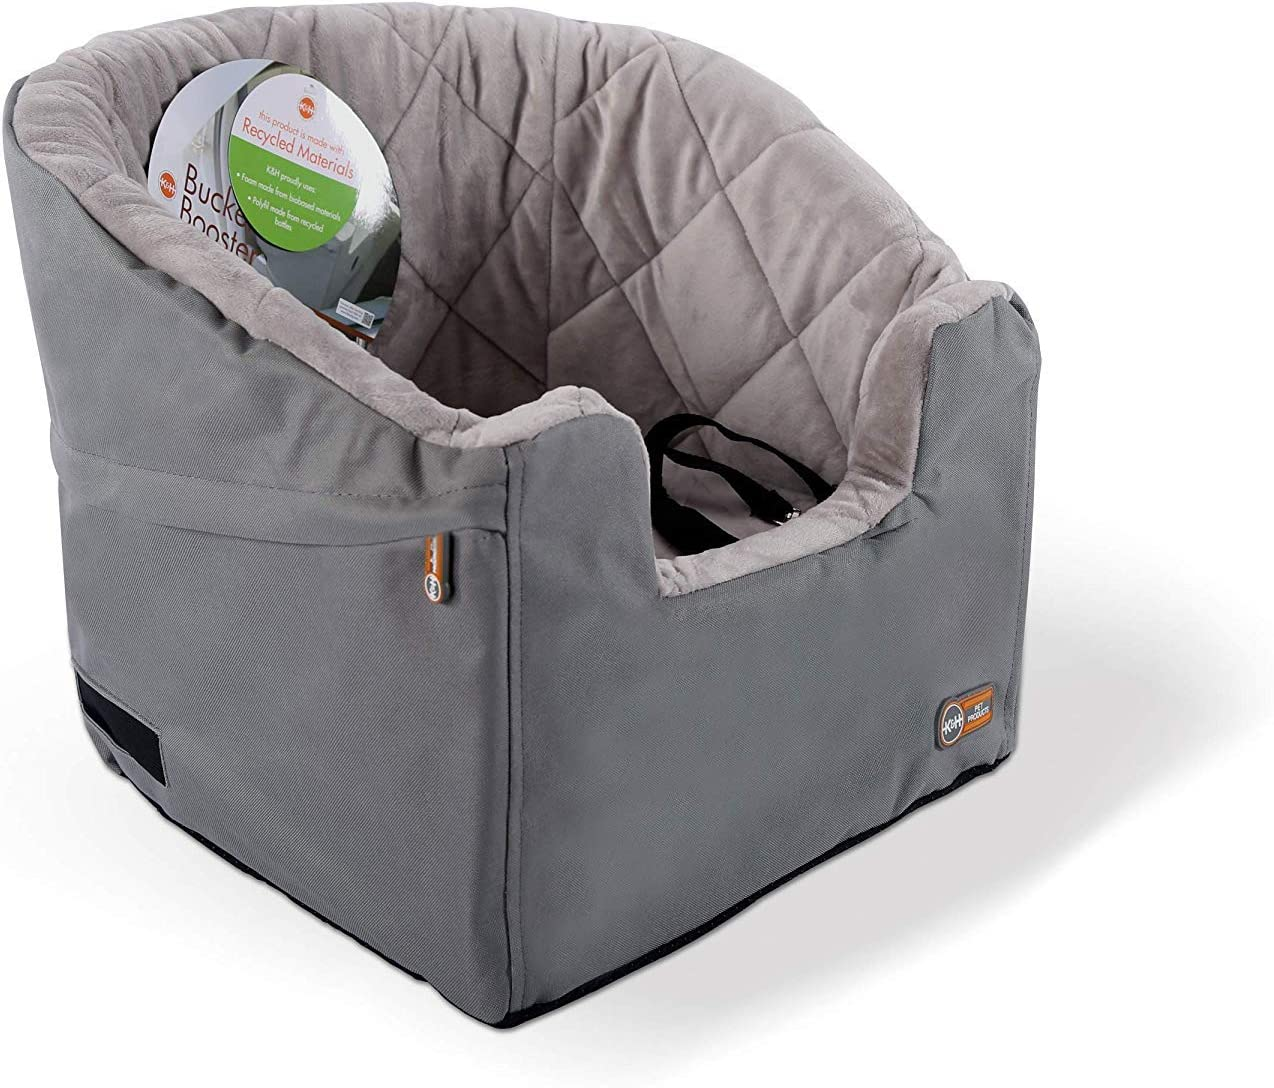 """K&H Pet Products Bucket Booster Dog Car Seat Small Gray 14.5"""" x 20"""" : Automotive Pet Booster Seats : Pet Supplies"""